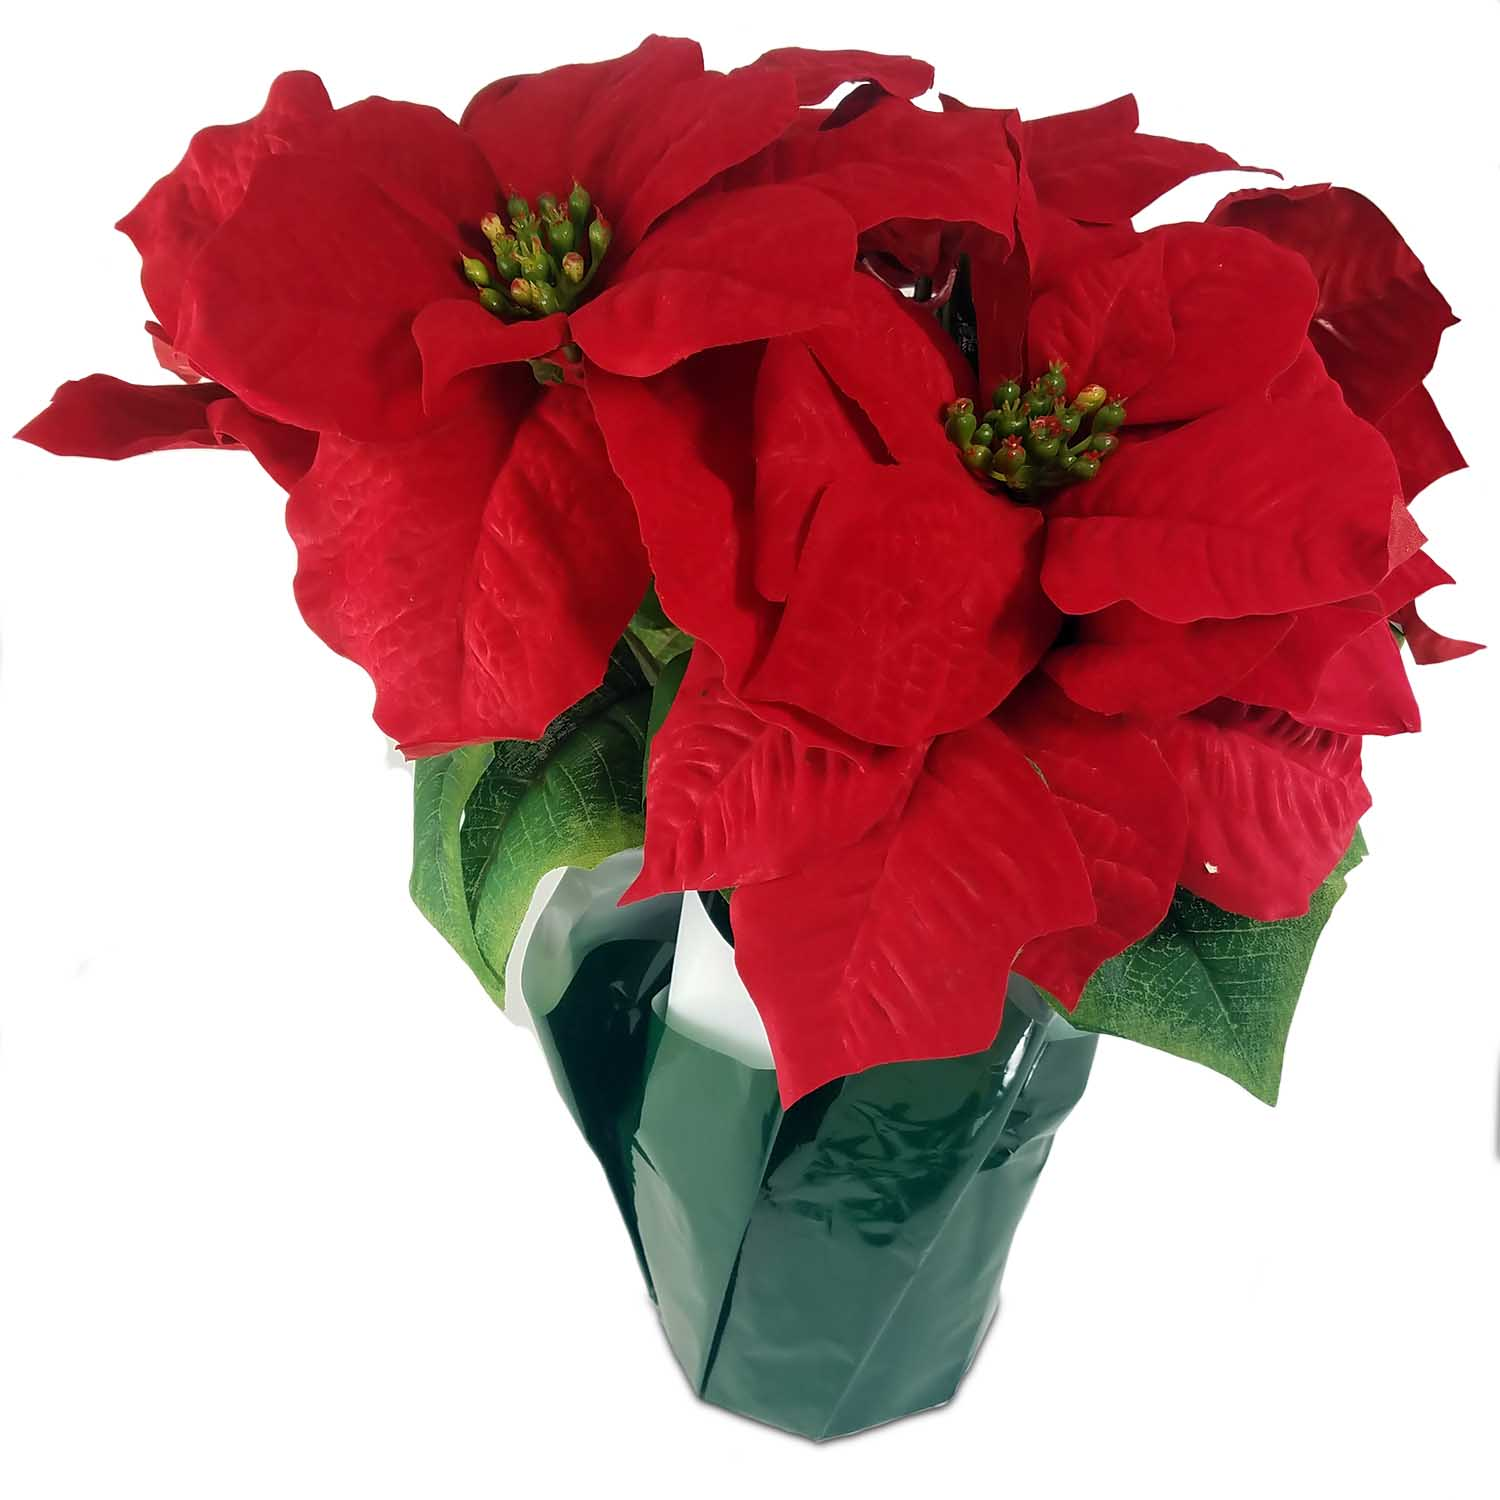 155 Inch Red Poinsettia Bush Wrapped In Green White Paper